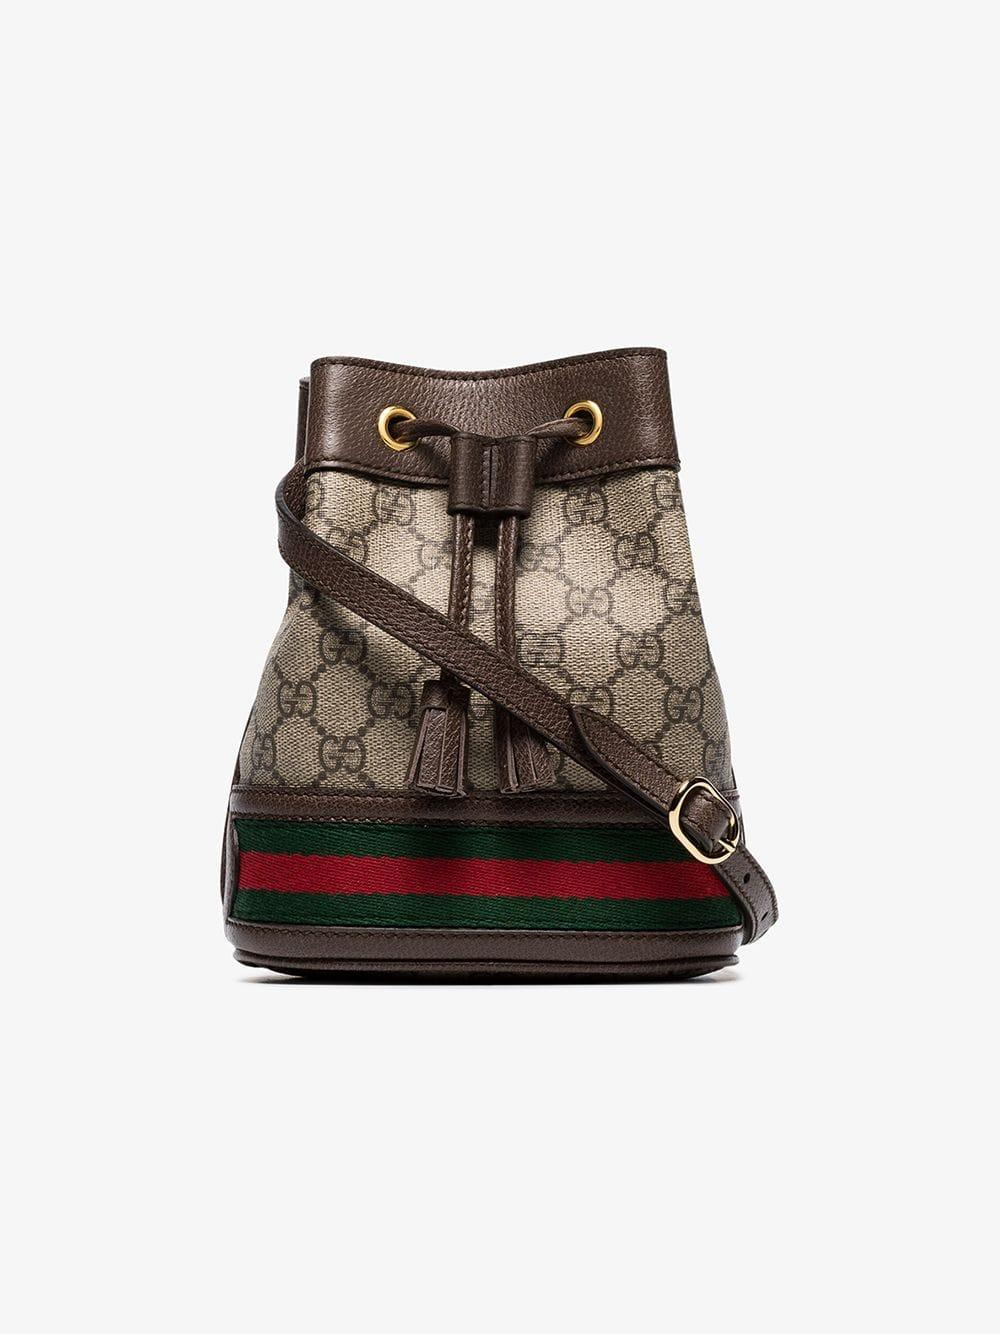 Gucci Ophidia Gg Bucket Bag In Beige Natural Save 51 Lyst